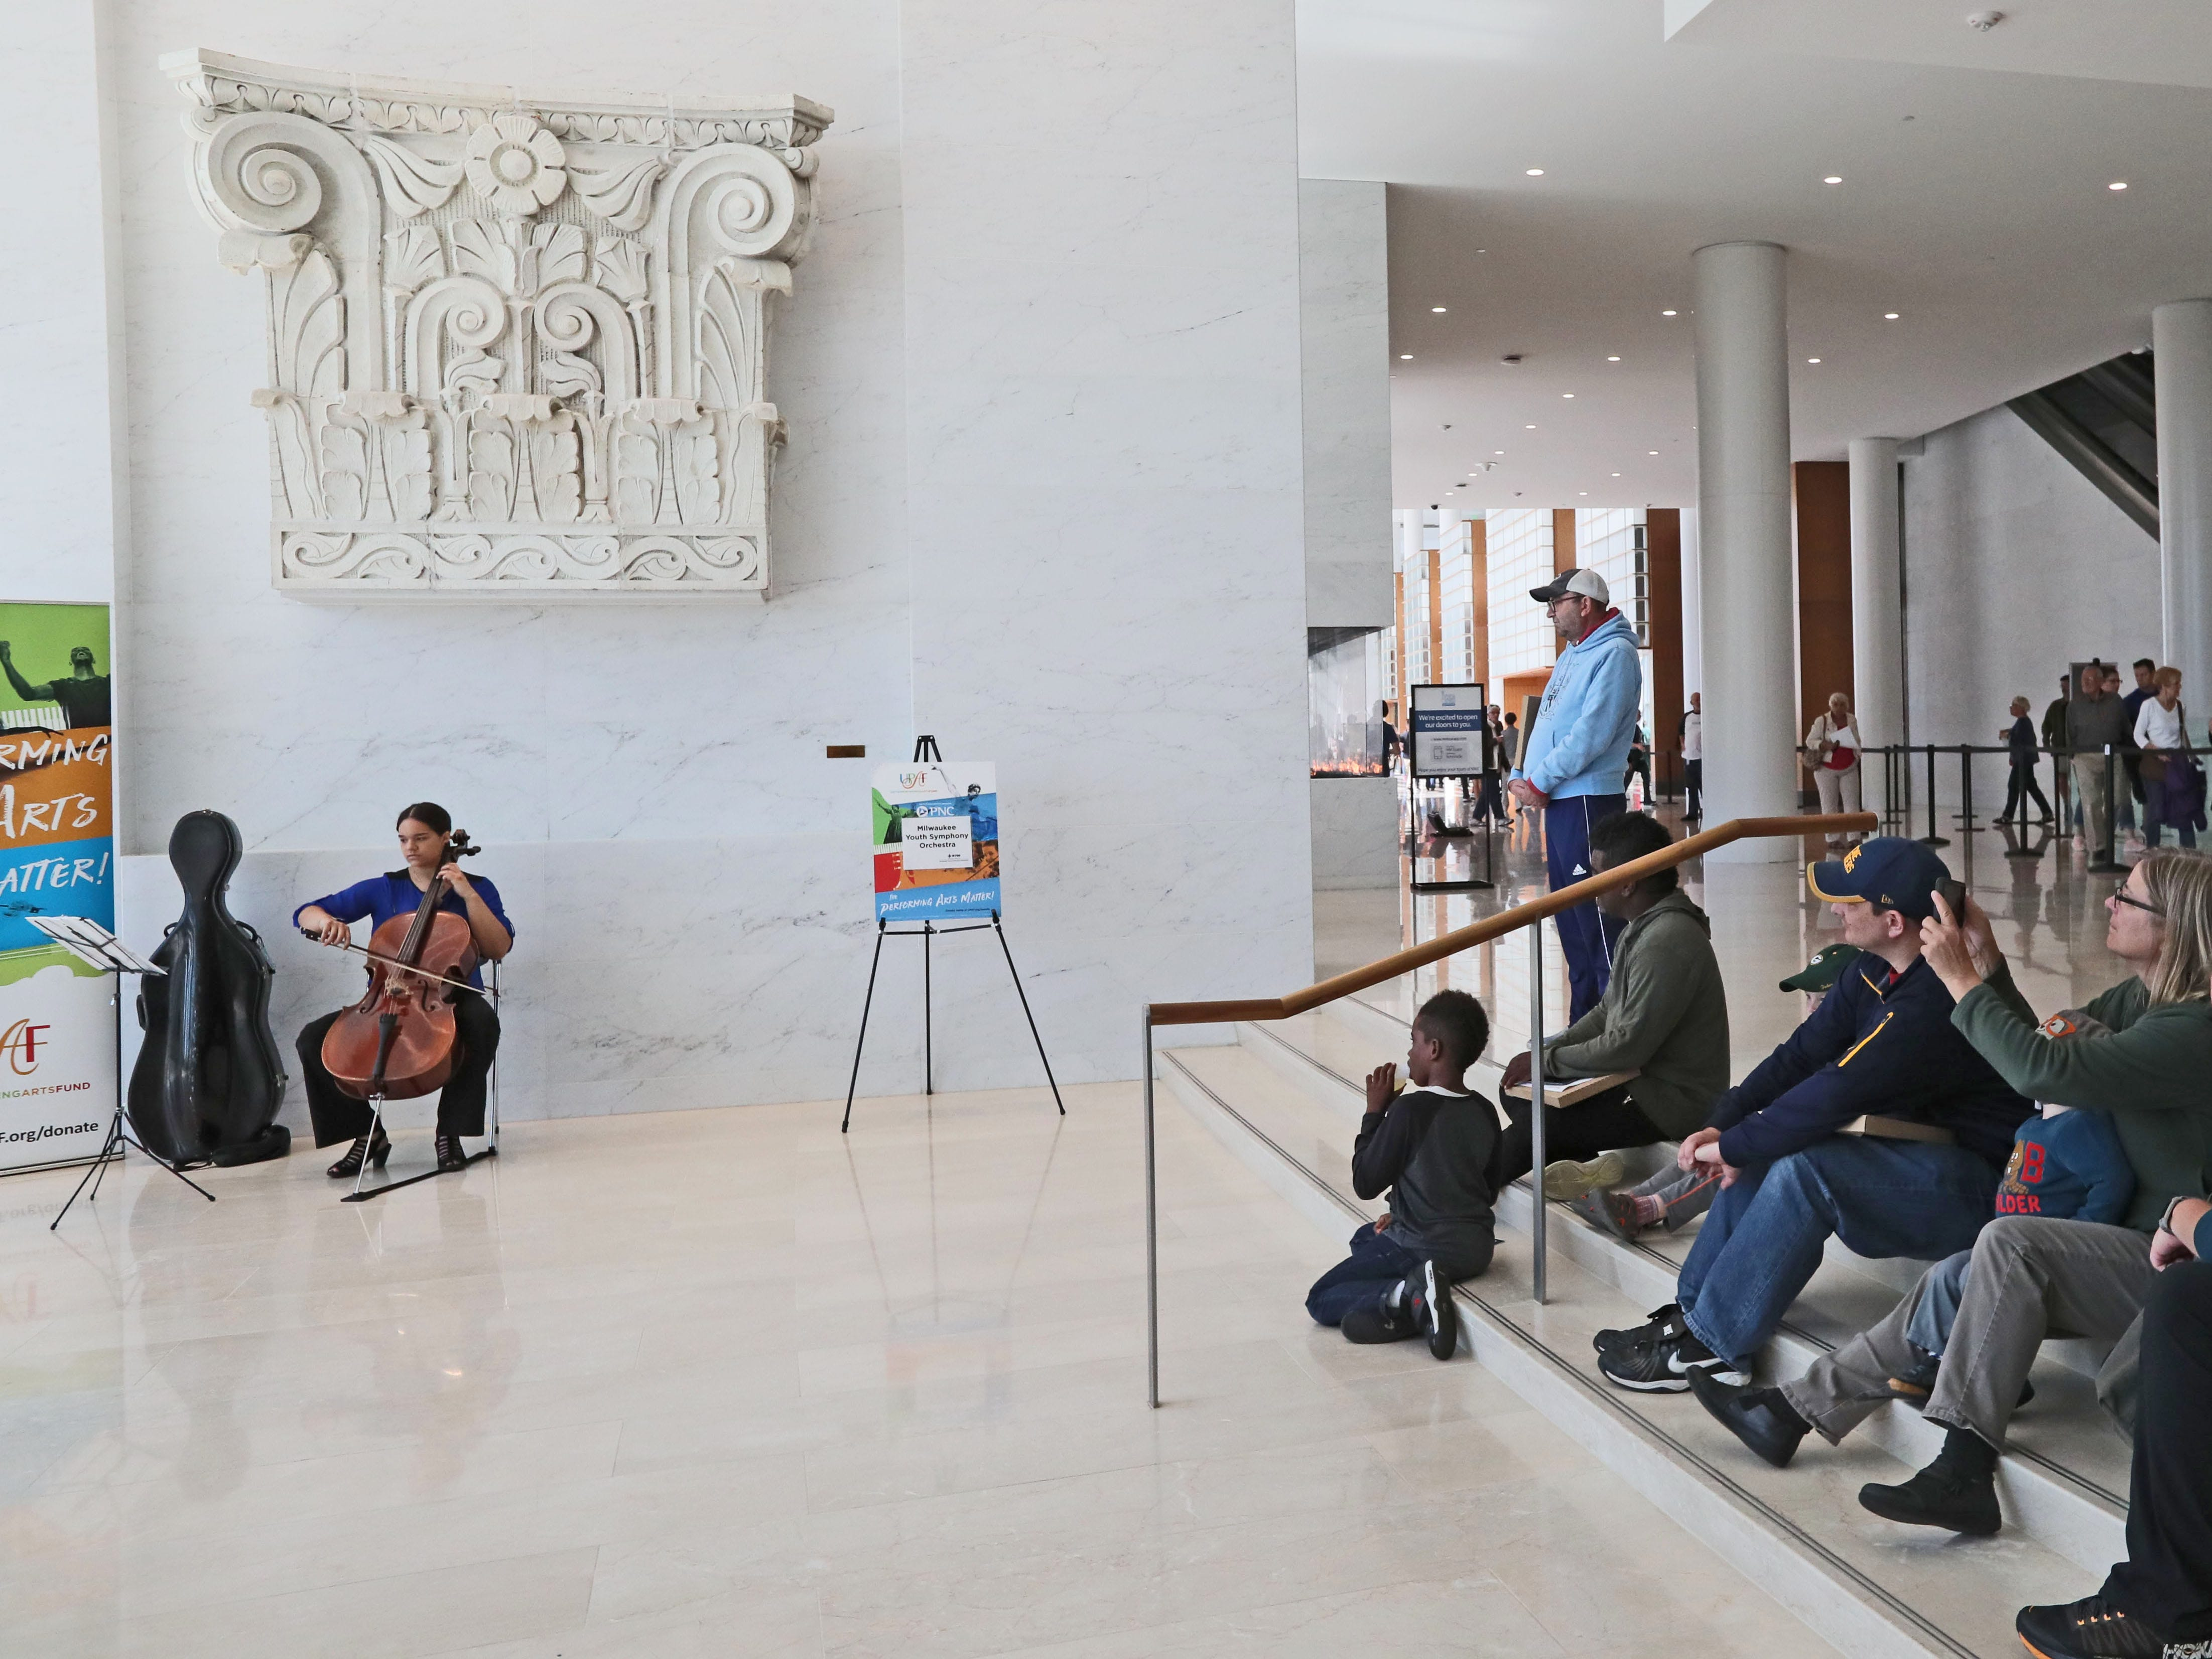 Mystique Evans of the Milwaukee Youth Symphony Orchestra plays the cello to raise money and awareness for the United Performing Arts Fund in the Giving Gallery at the Northwestern Mutual Tower and Commons. .  Artists from other UPAF member groups also performed.